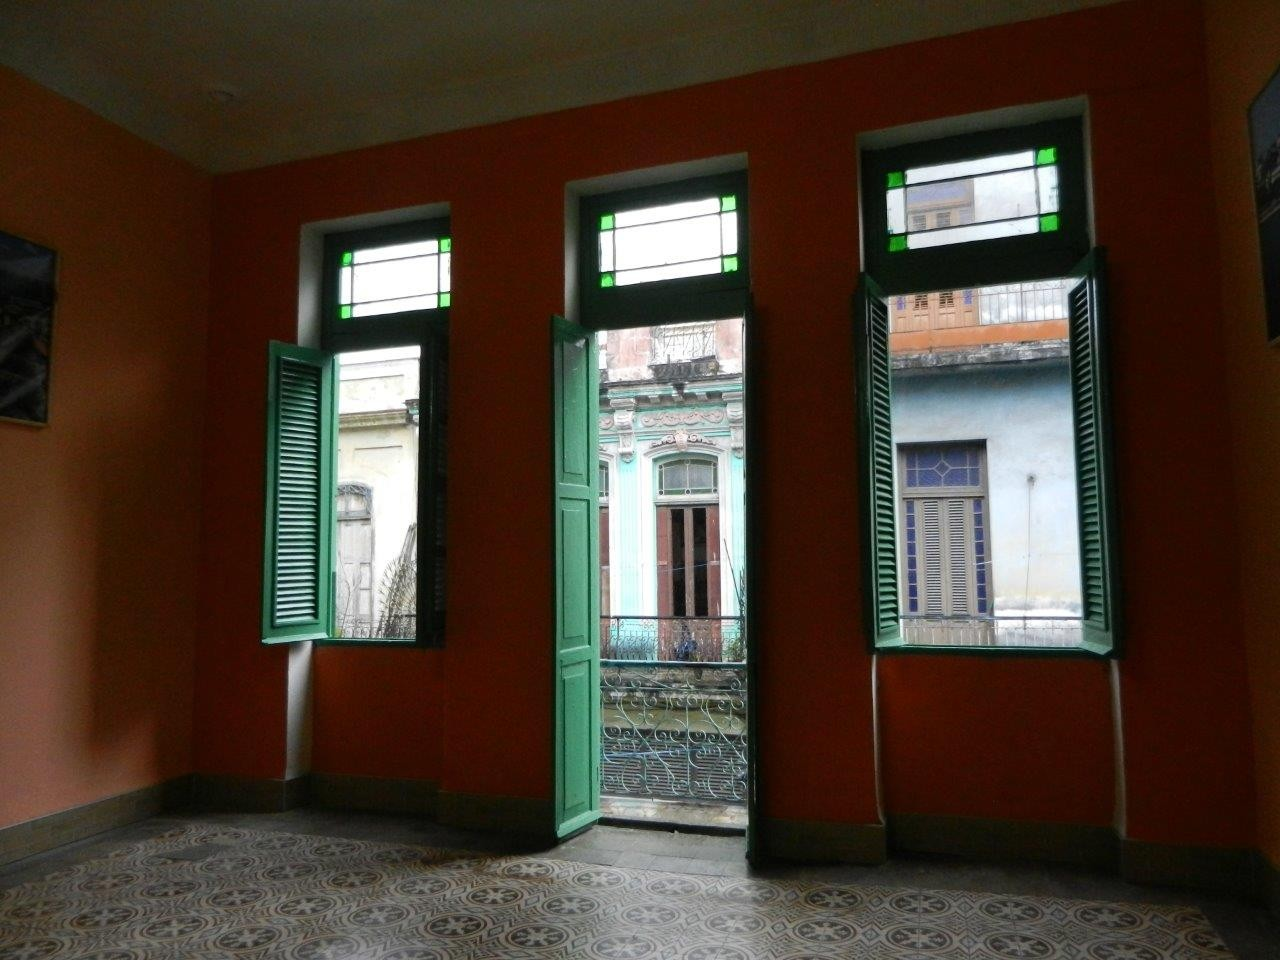 Main dance room with view to balcony